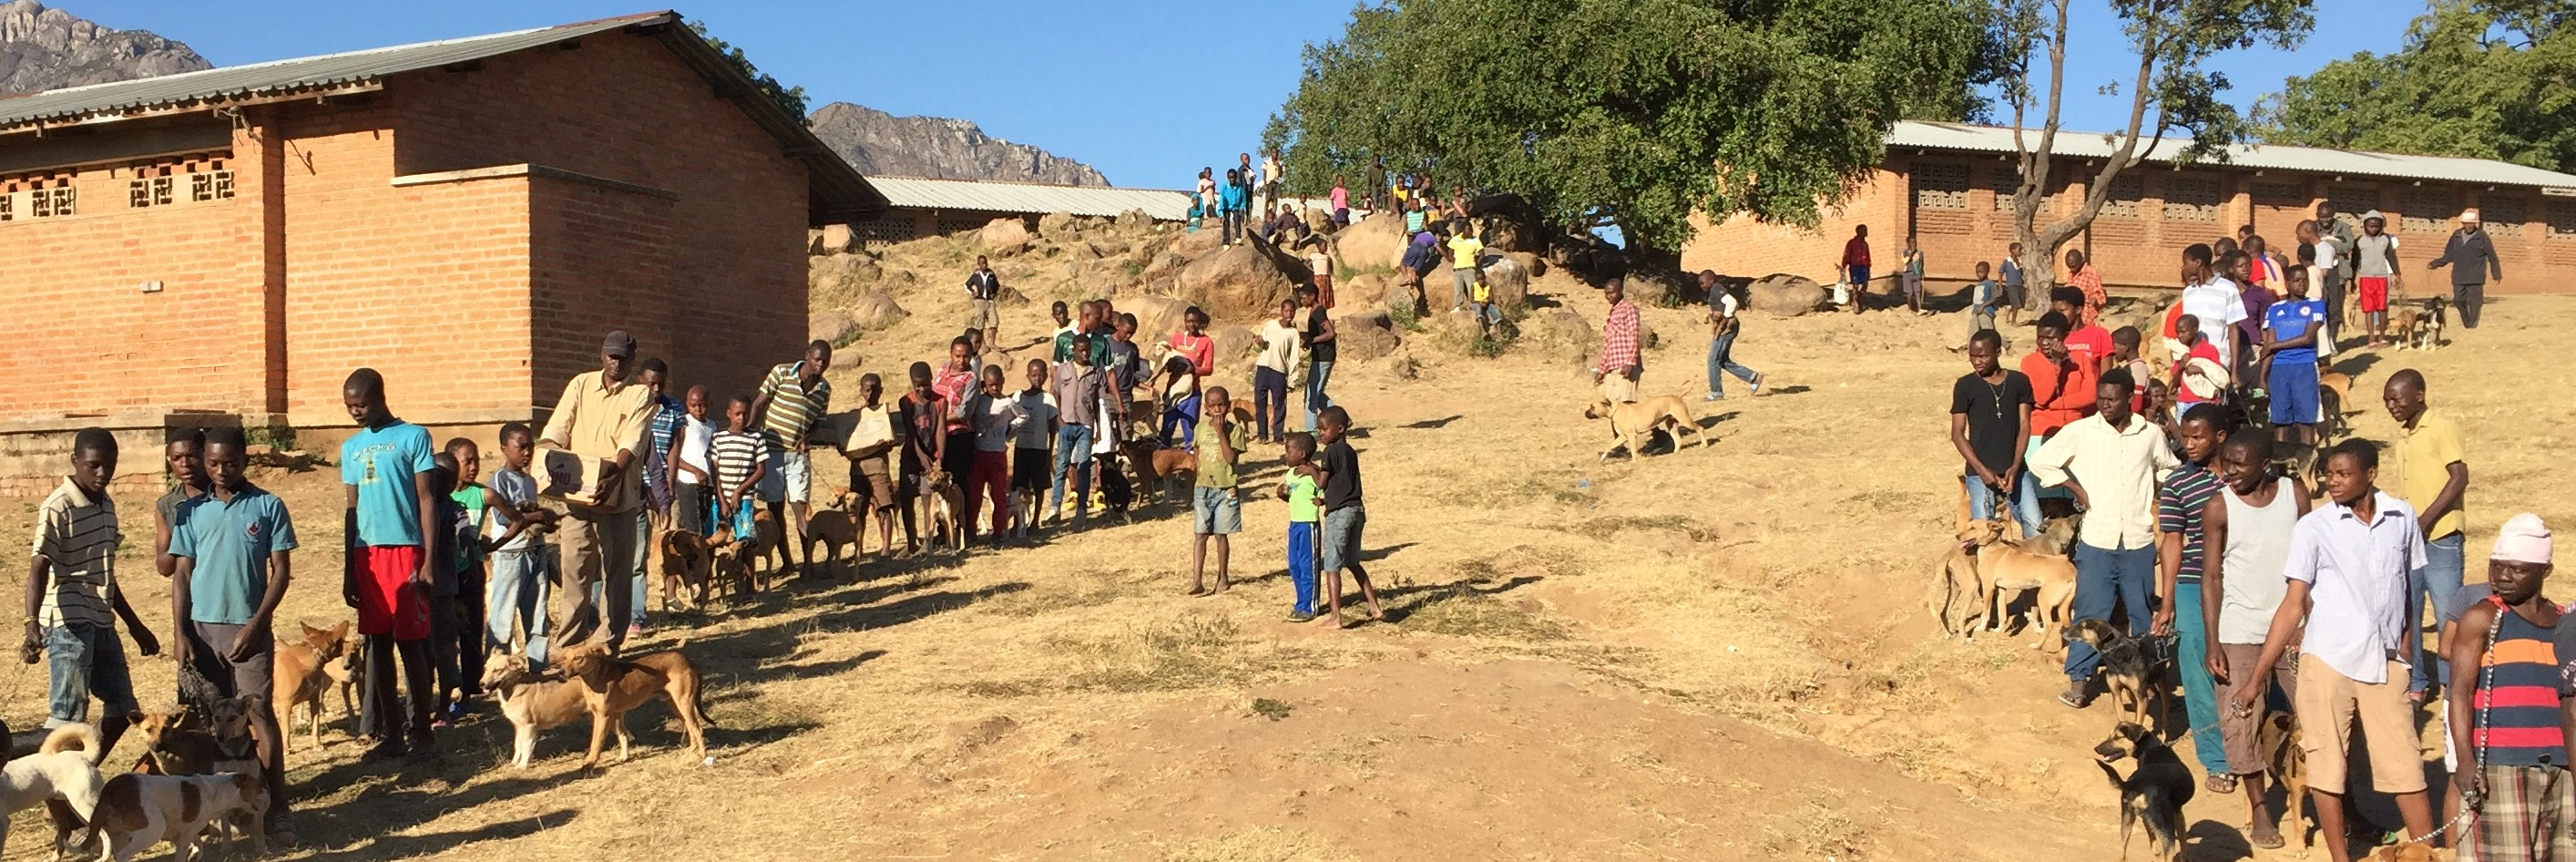 Rabies Elimination article banner image - Villagers queuing on a hill with their dogs